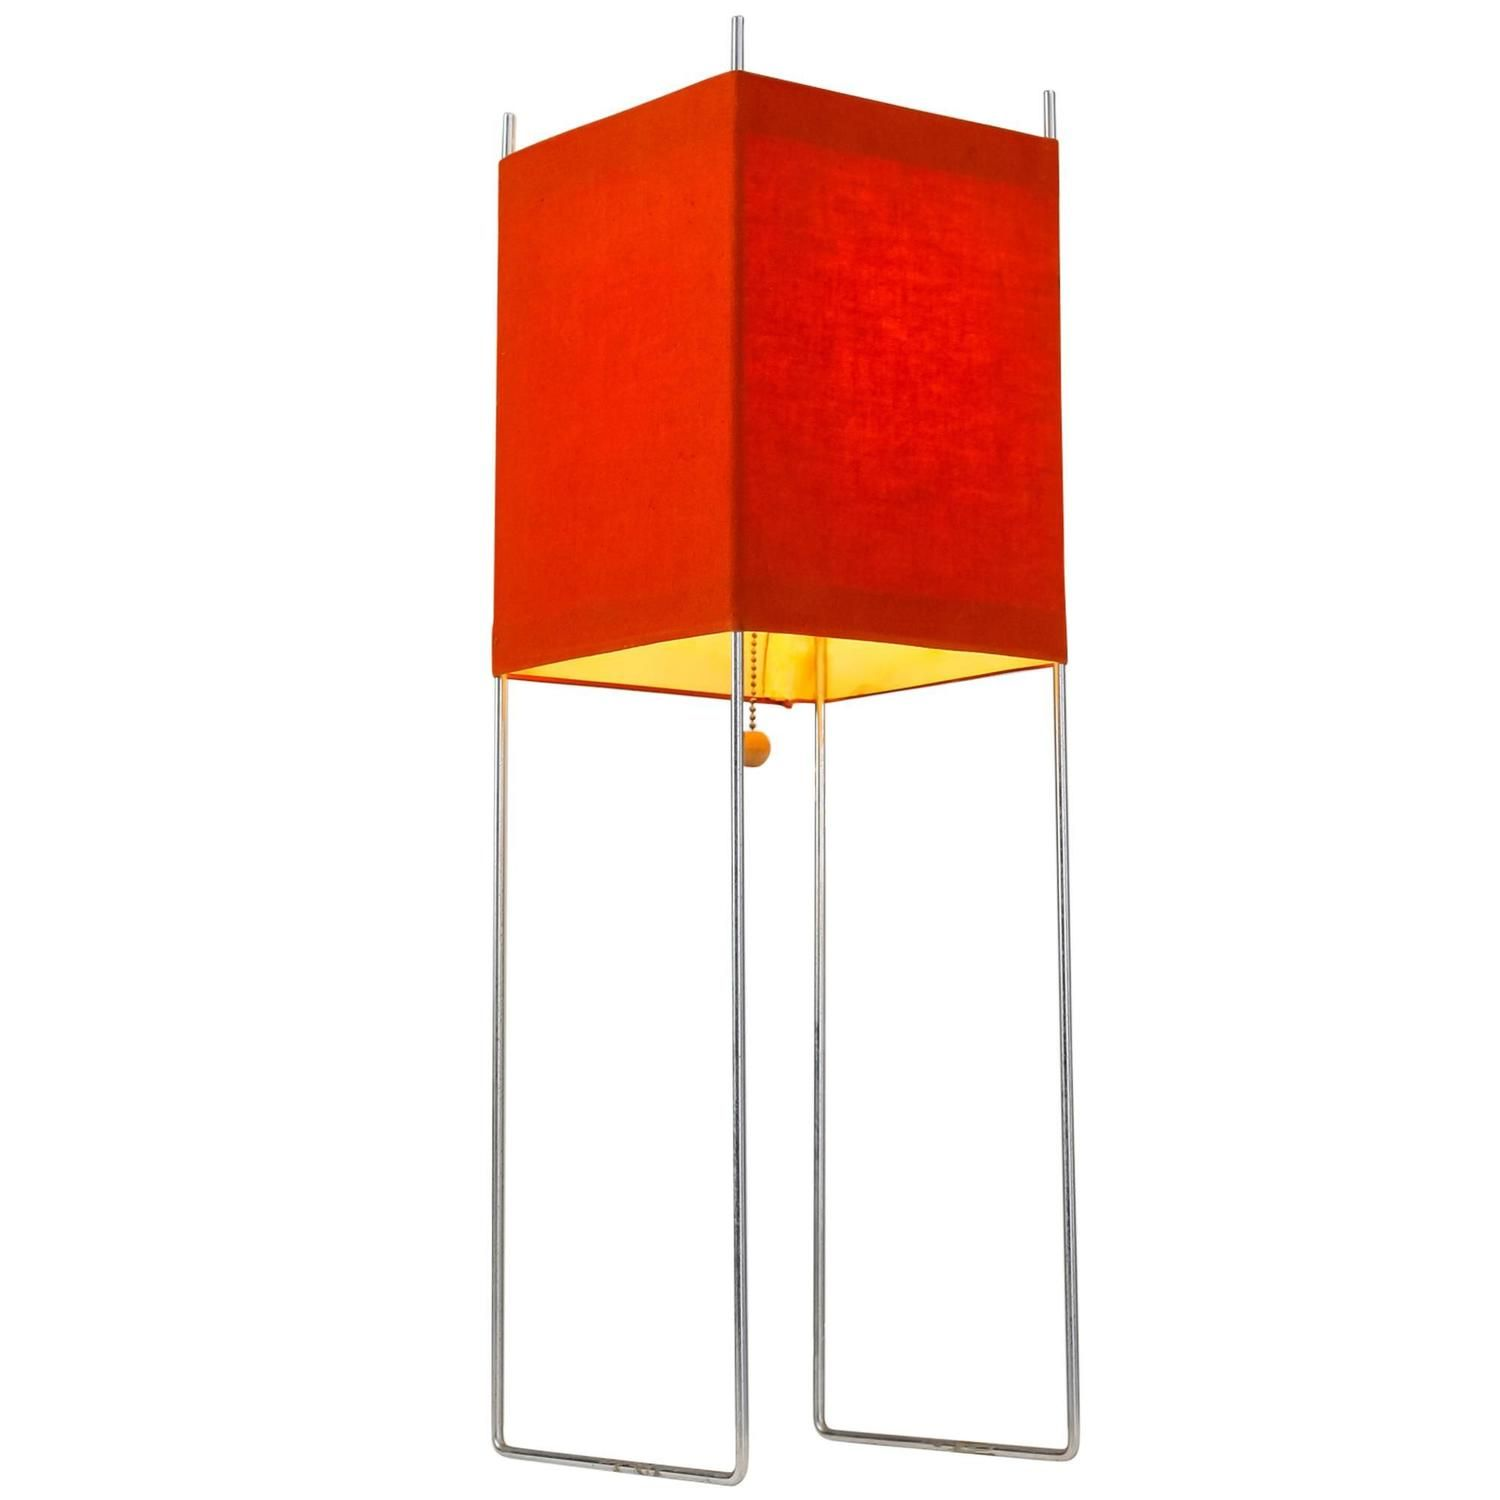 George nelson red kite table or floor lamp usa 1970s red kite george nelson red kite table or floor lamp usa 1970s mozeypictures Images